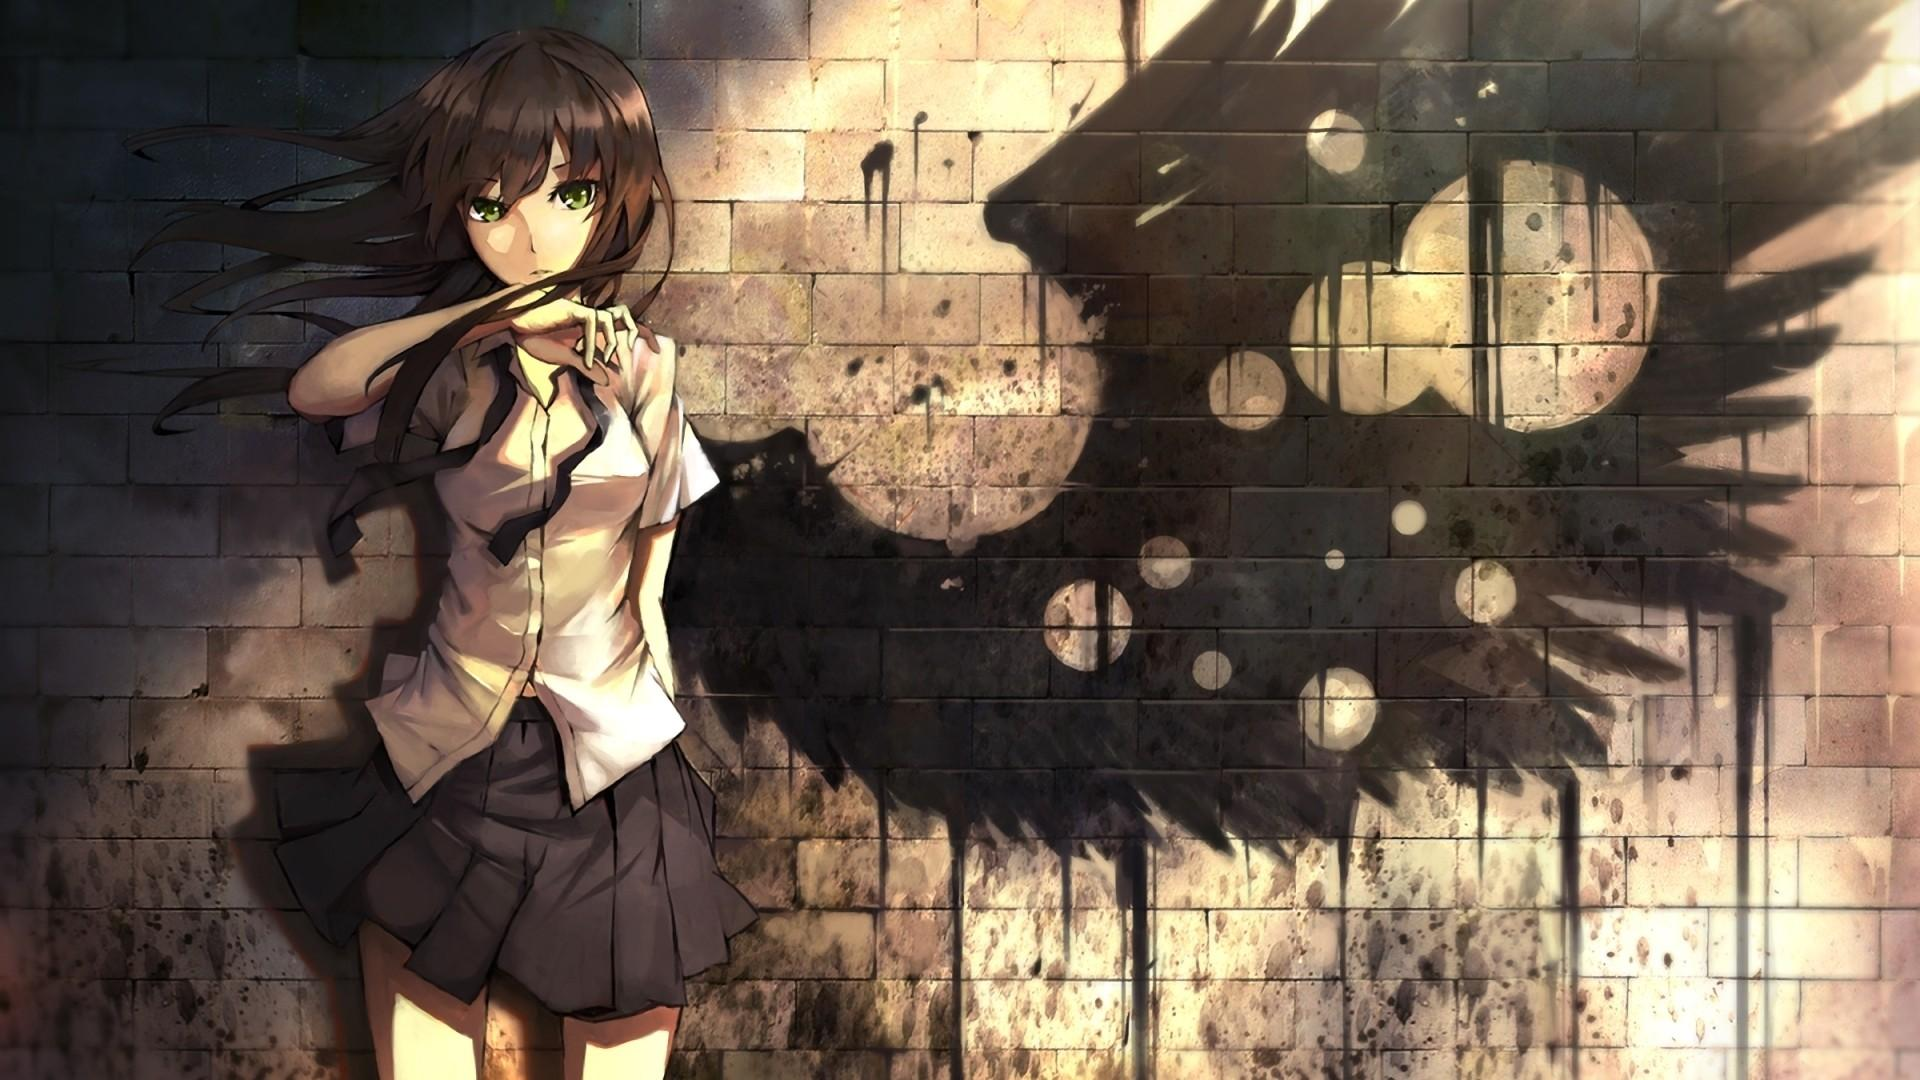 Brick-Wall-Angel-1920x-1080-Need-iPhone-S-Plus-Background-for-IPhoneSPlus-Foll-wallpaper-wp3403503